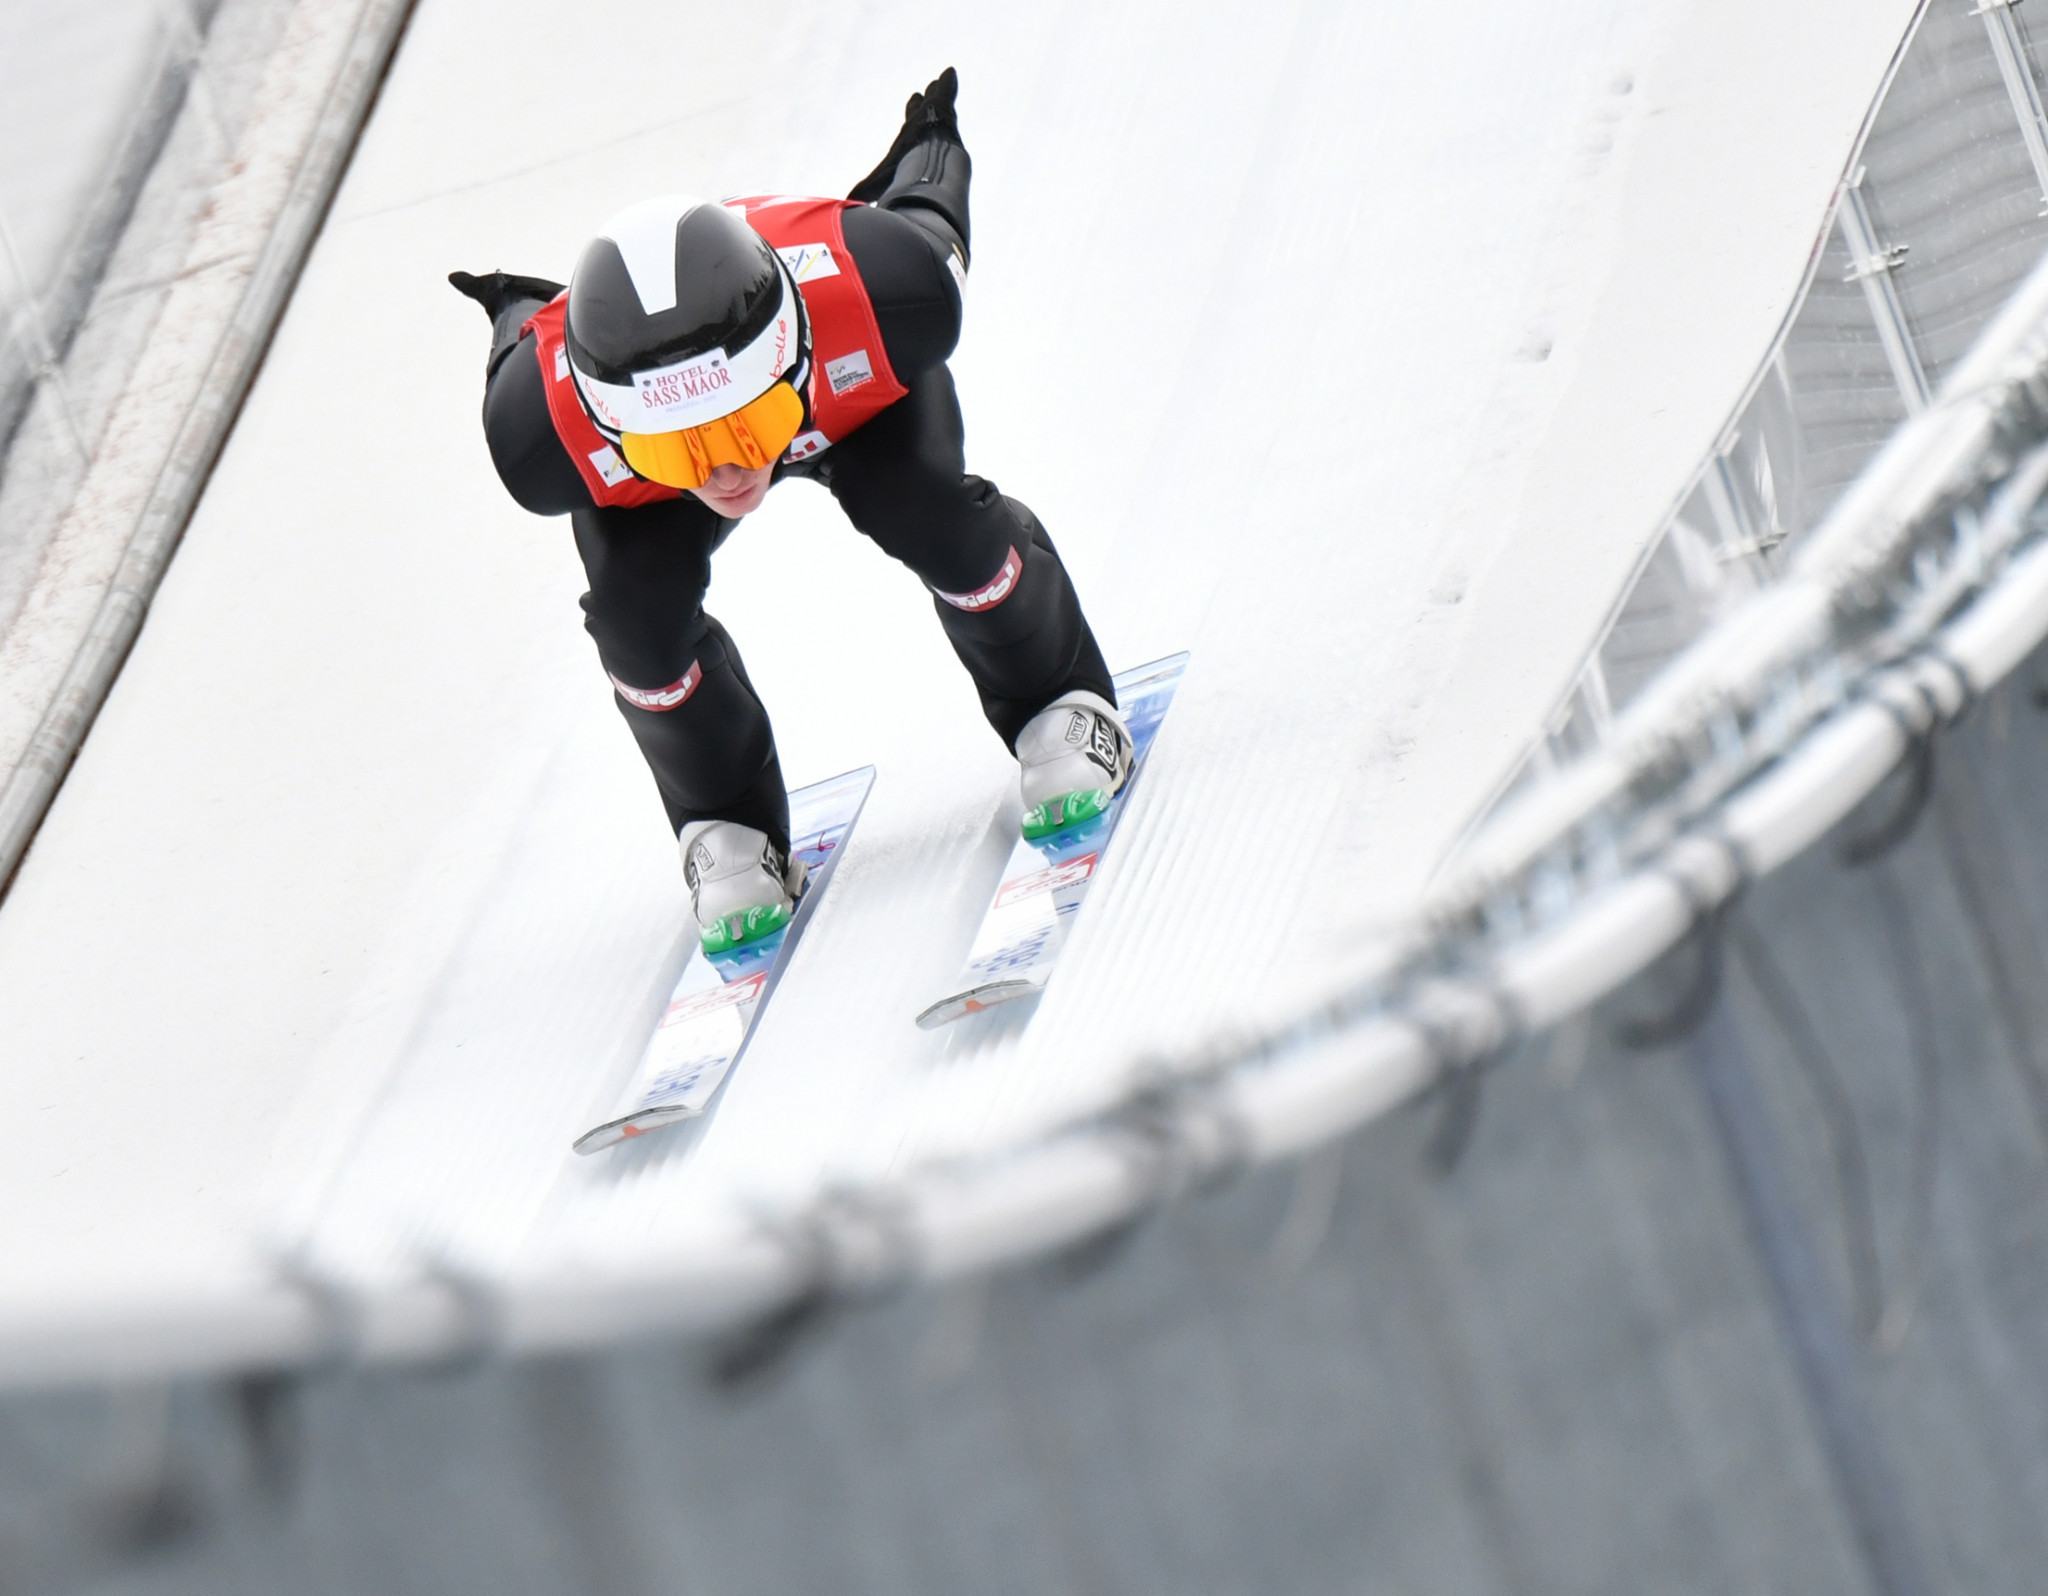 Stefan Rettenegger is among the athletes to have been named on Austria's team for the FIS Nordic Junior World Ski Championships ©Getty Images